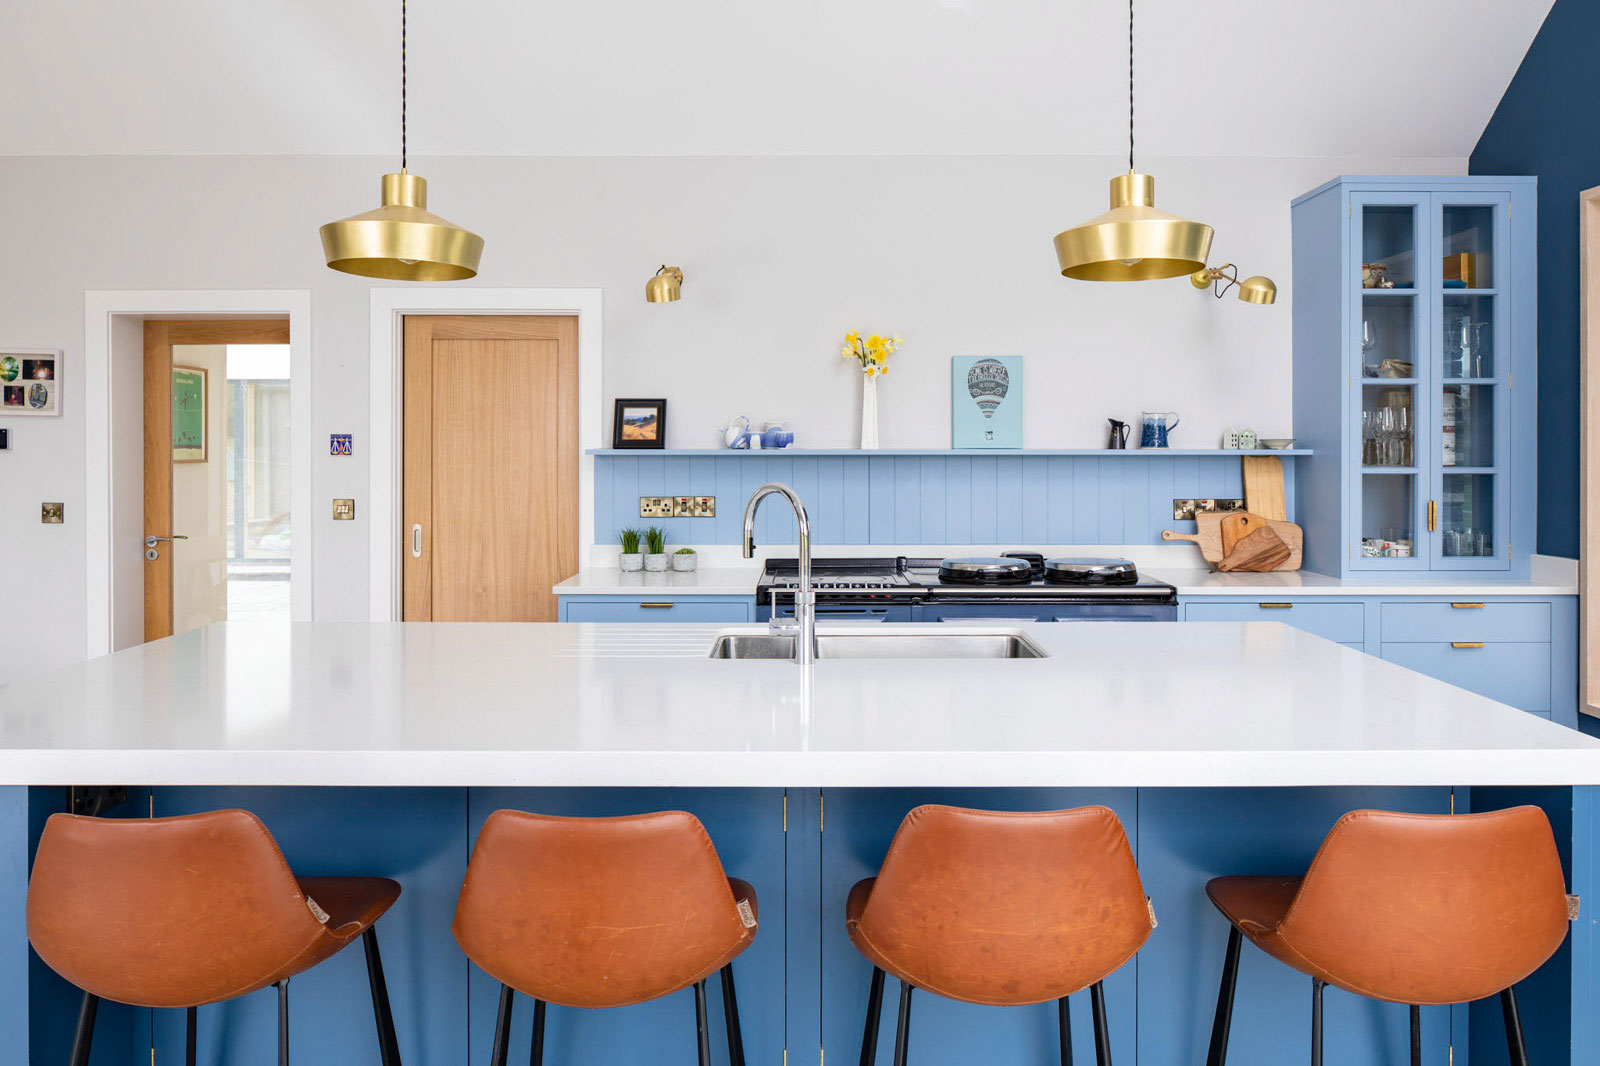 Soft Brass Lighting Finishes in this Modern Farmhouse Kitchen